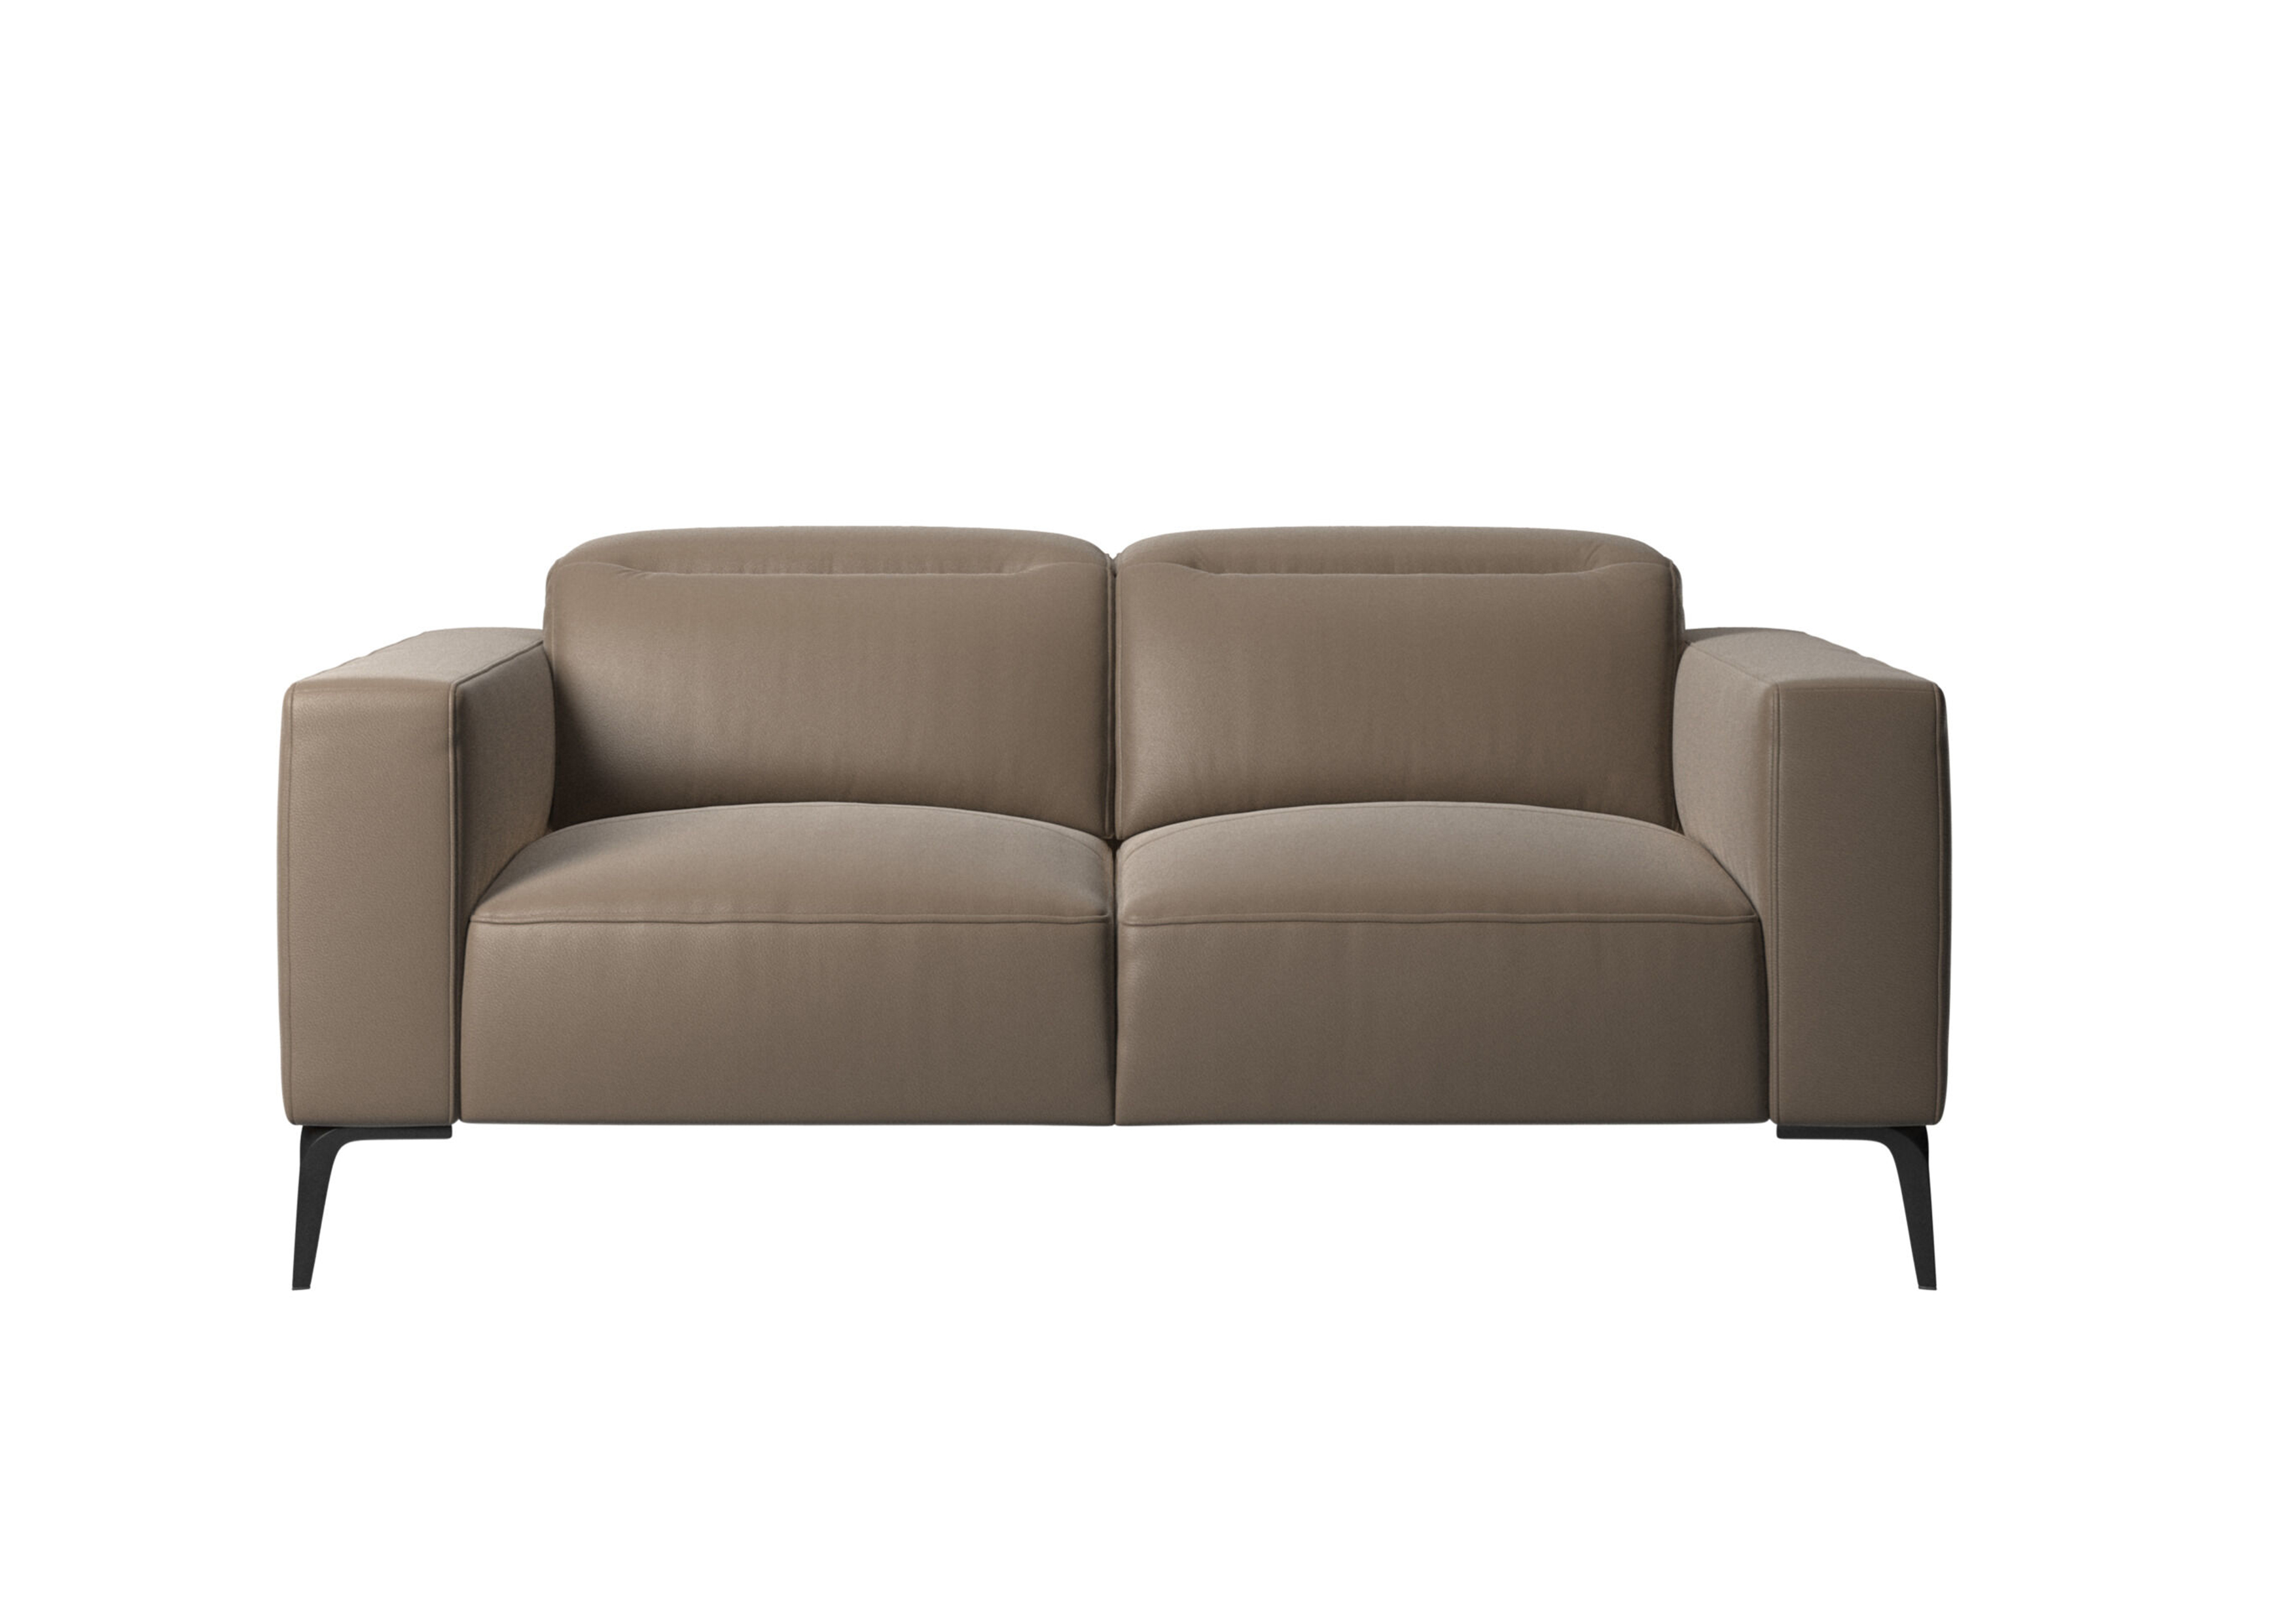 Zurich 2 Seater Sofas And Armchairs Nz Archipro